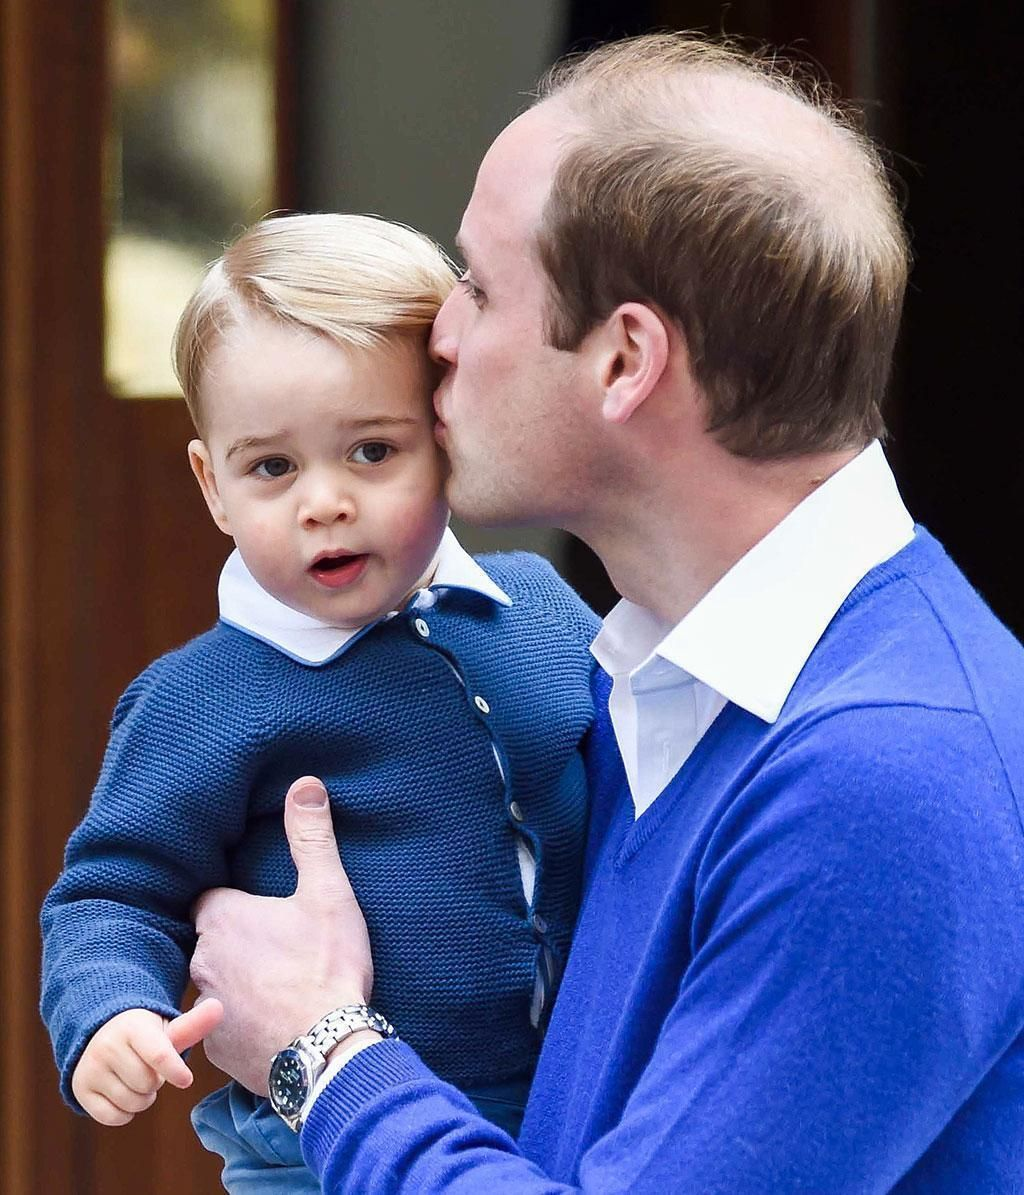 Prince William's Emotional Interview About Raising George